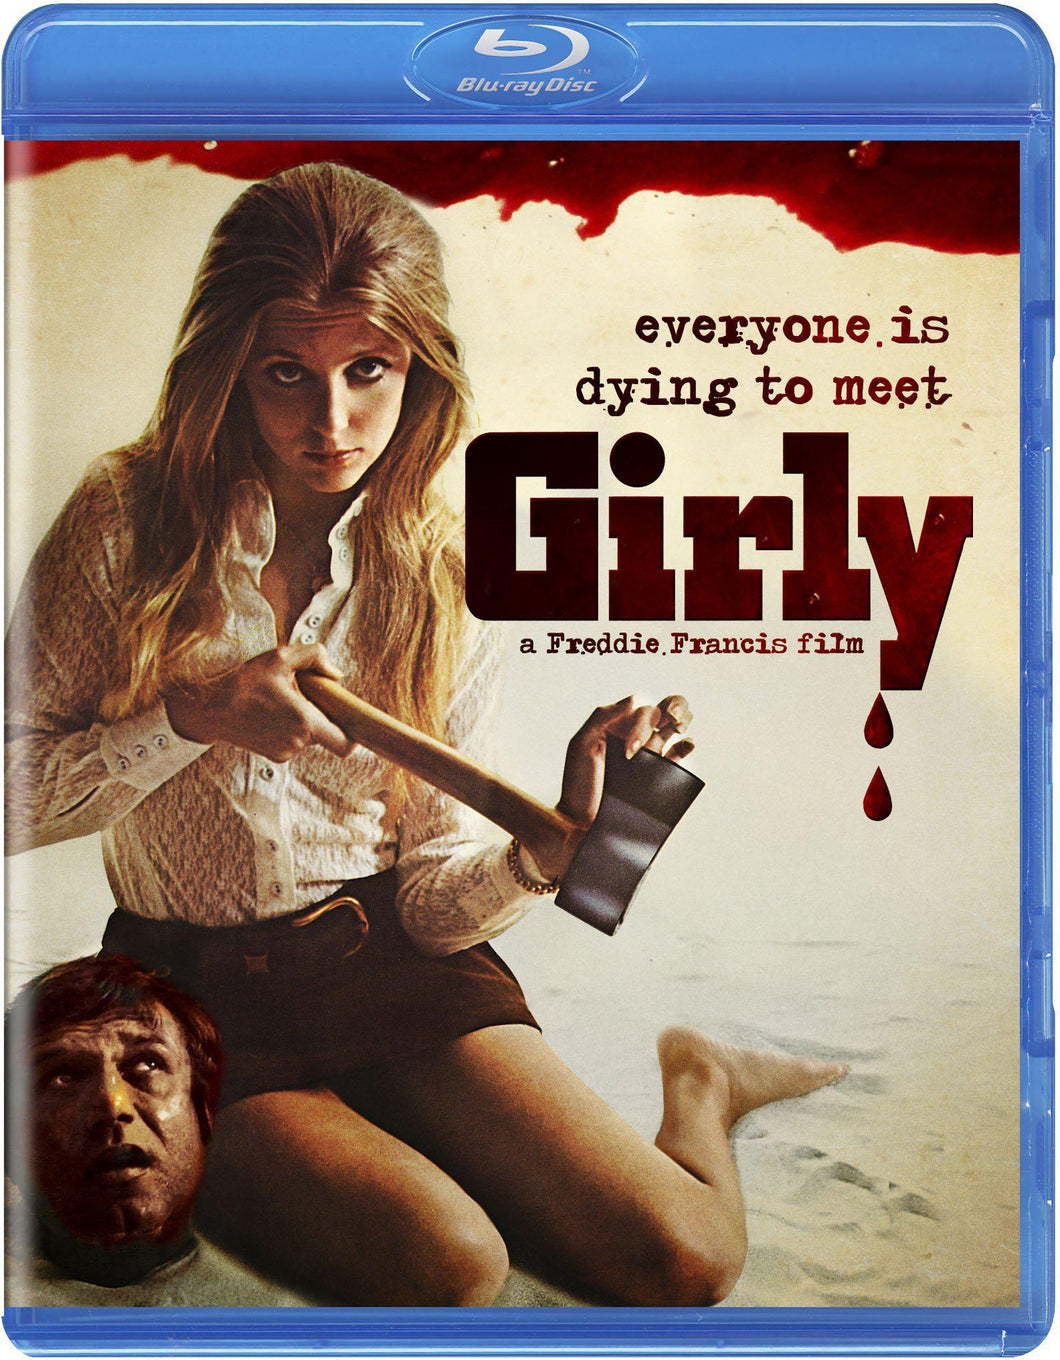 Girly (Blu-ray): Ronin Flix